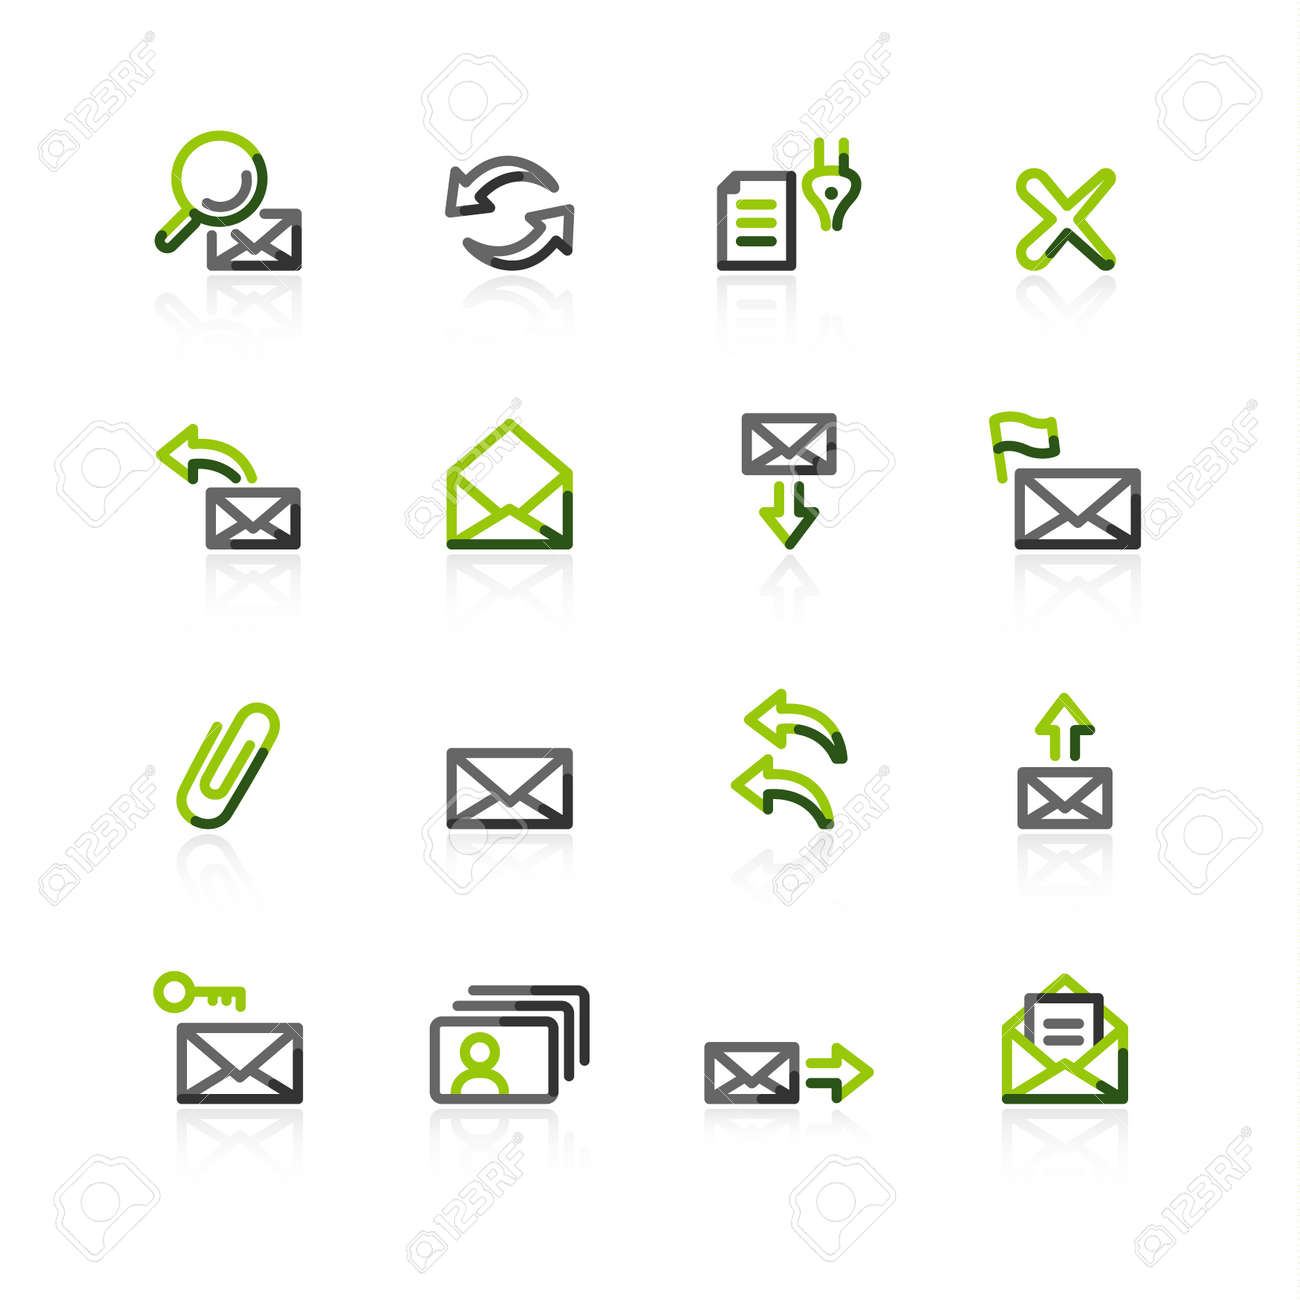 green-gray e-mail icons Stock Vector - 3644580